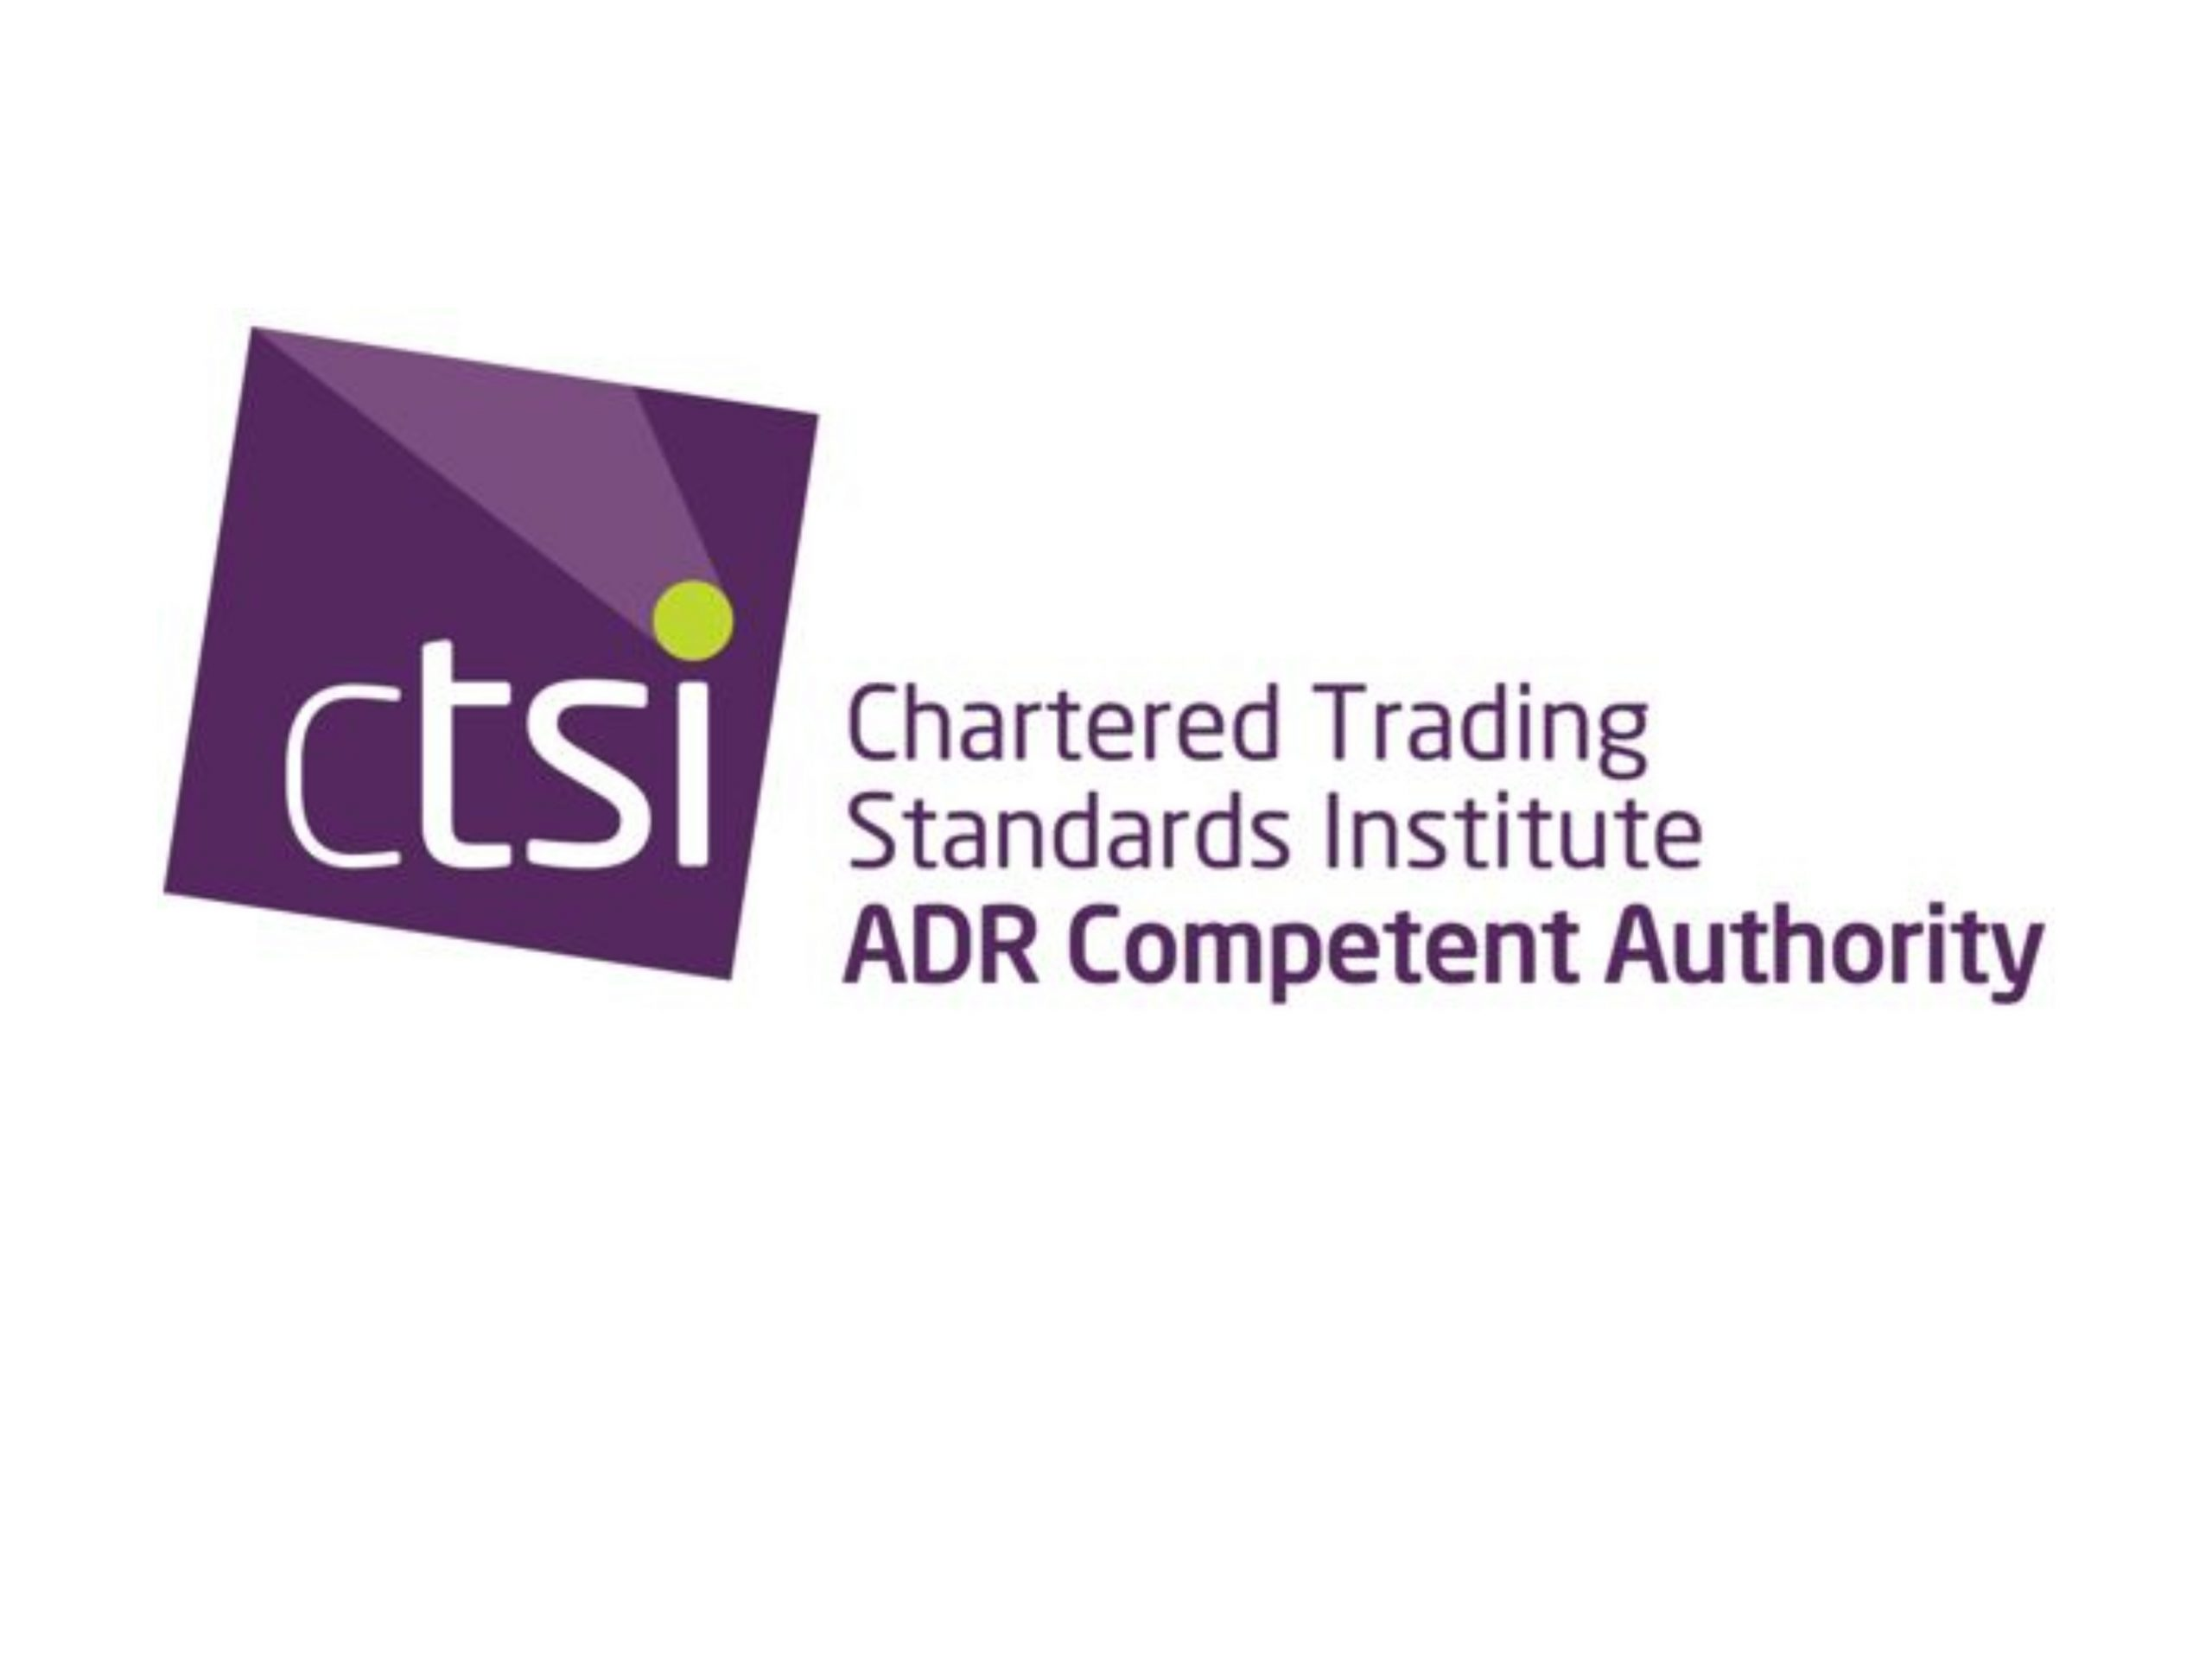 CTSI Appoints John Herriman as new Chief Executive